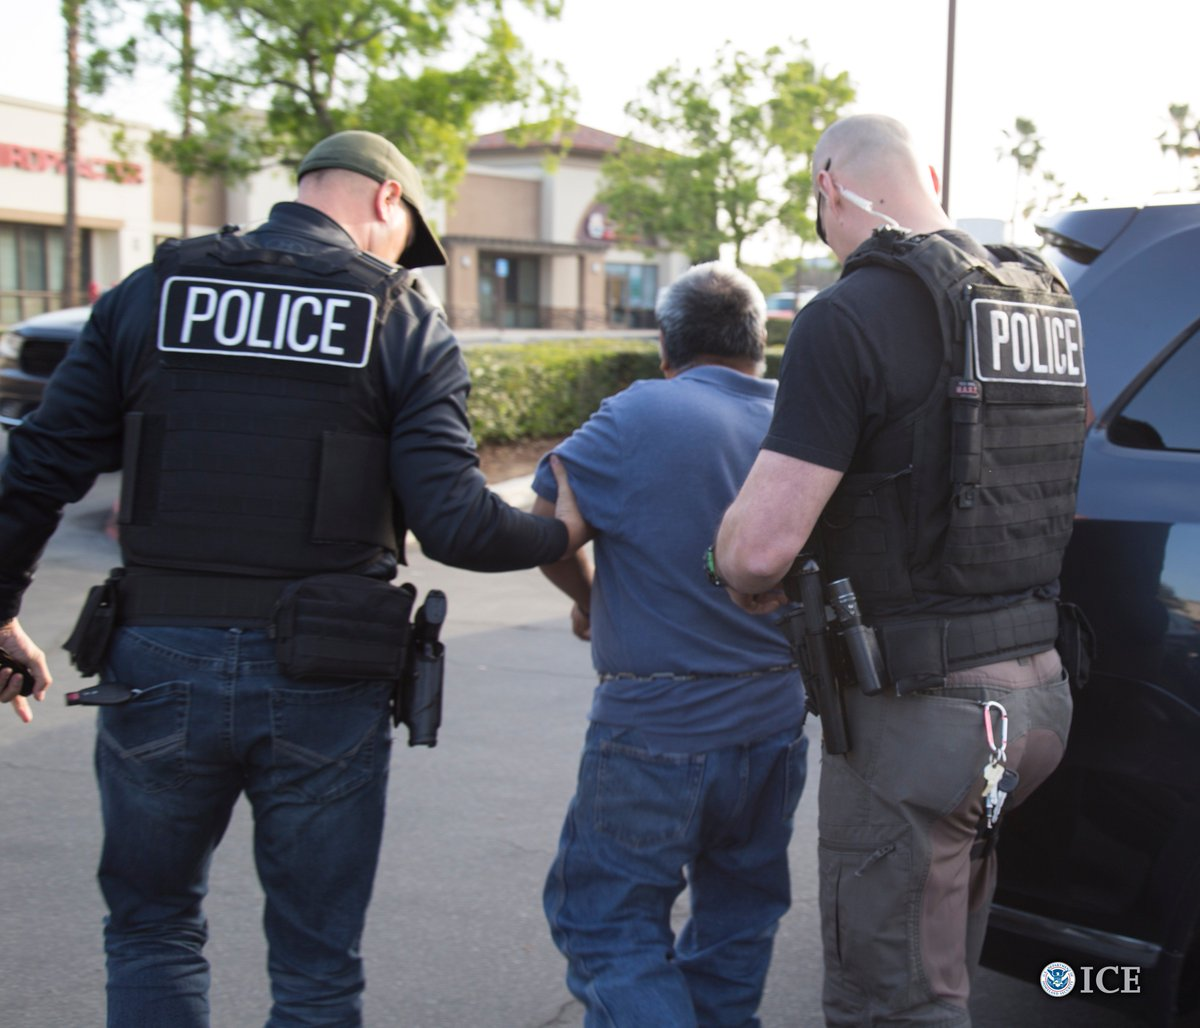 ICE arrests 33 with history of human rights violation across the US during Operation No Safe Haven IV https://t.co/AdSlx1lDW0